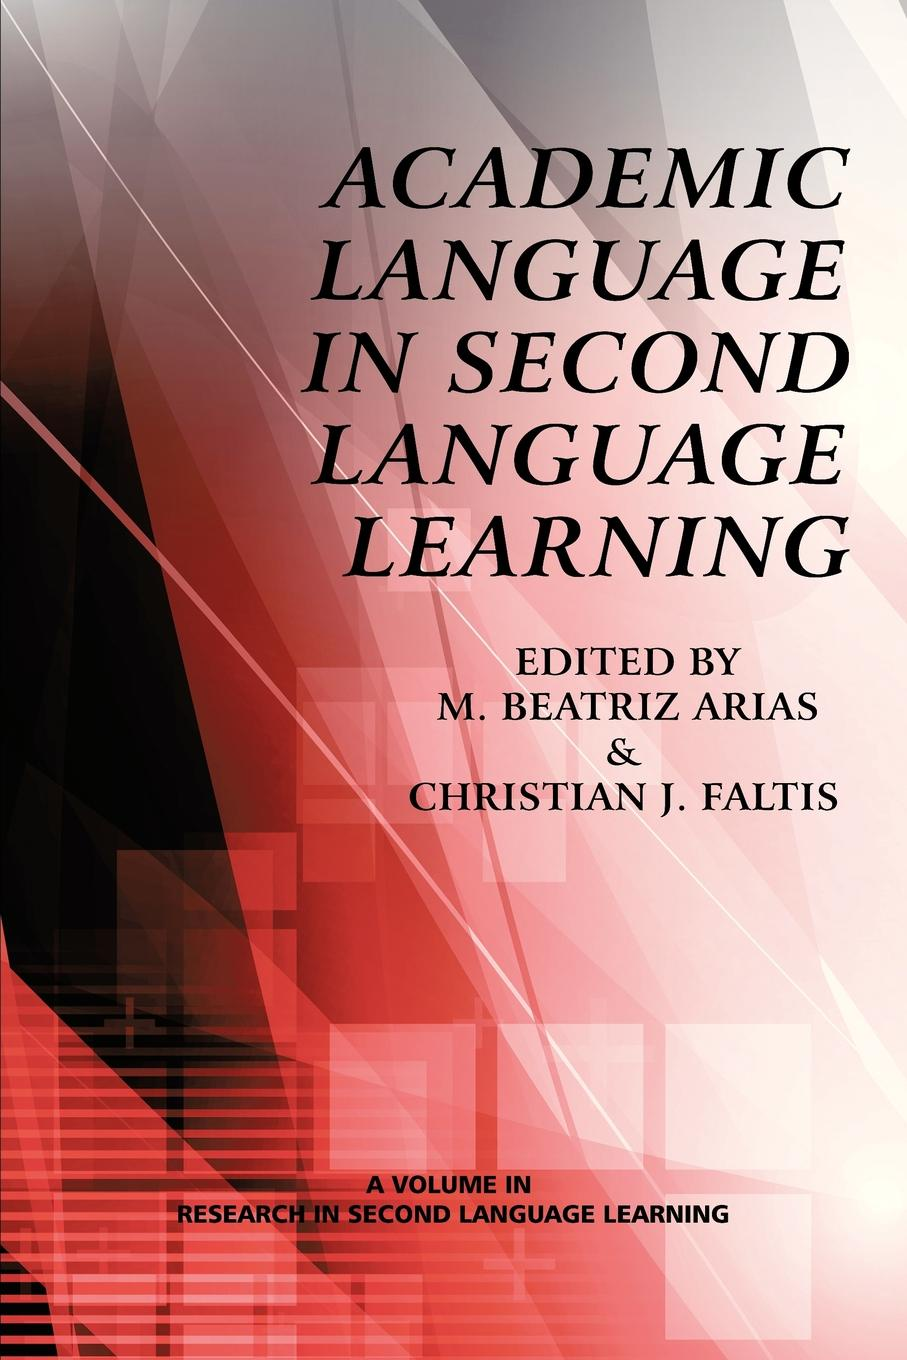 Academic Language in Second Language Learning models of bilingual education programmes in majority language contexts